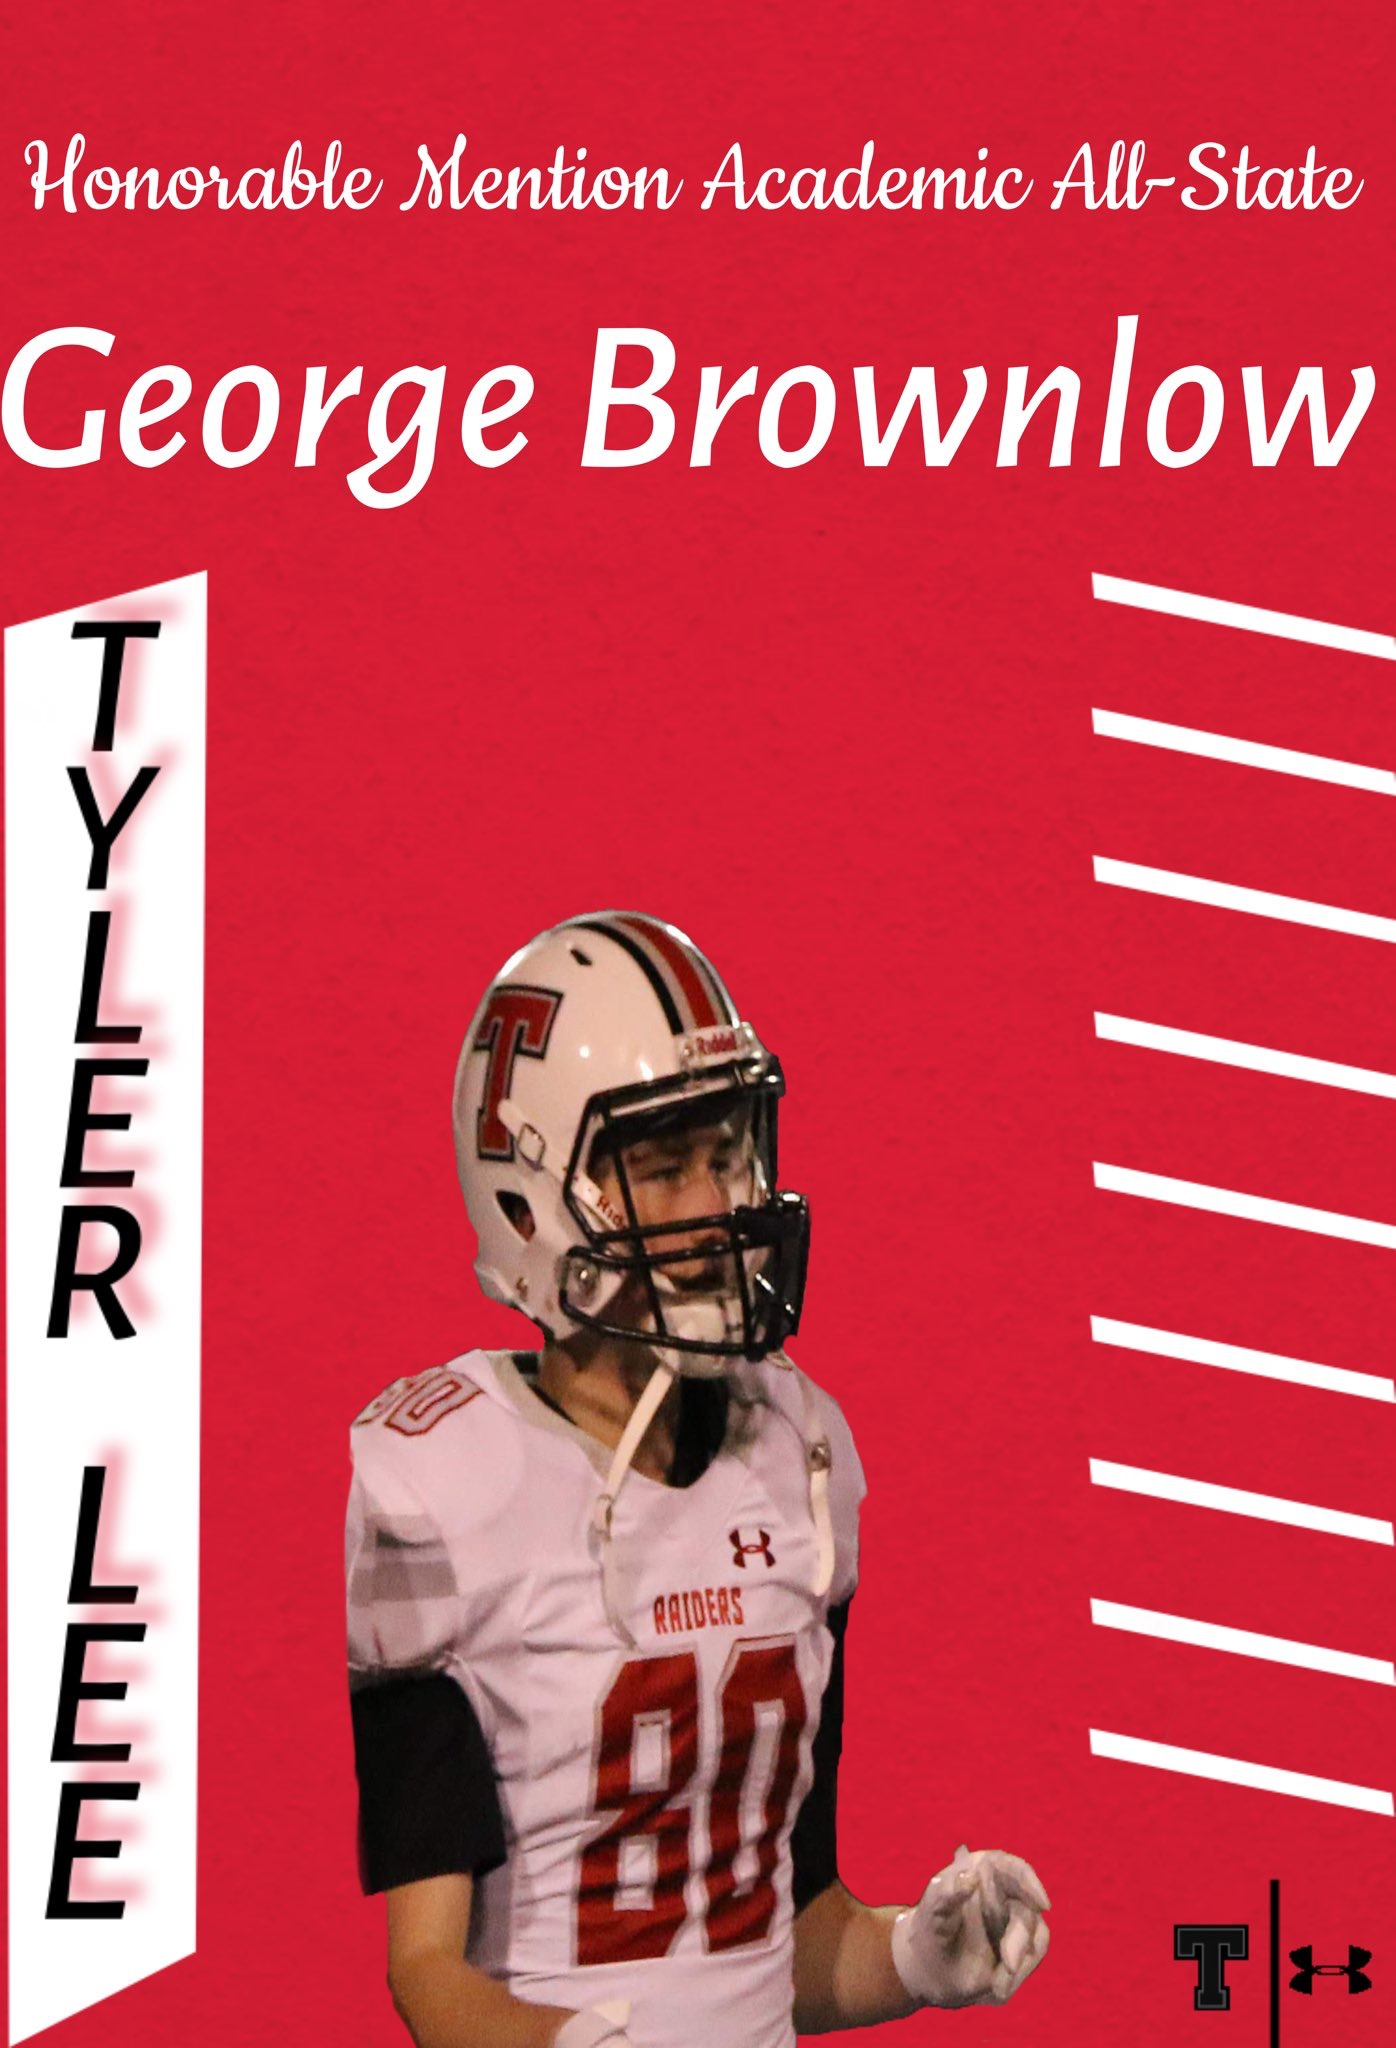 Academic All-State_Brownlow.JPG